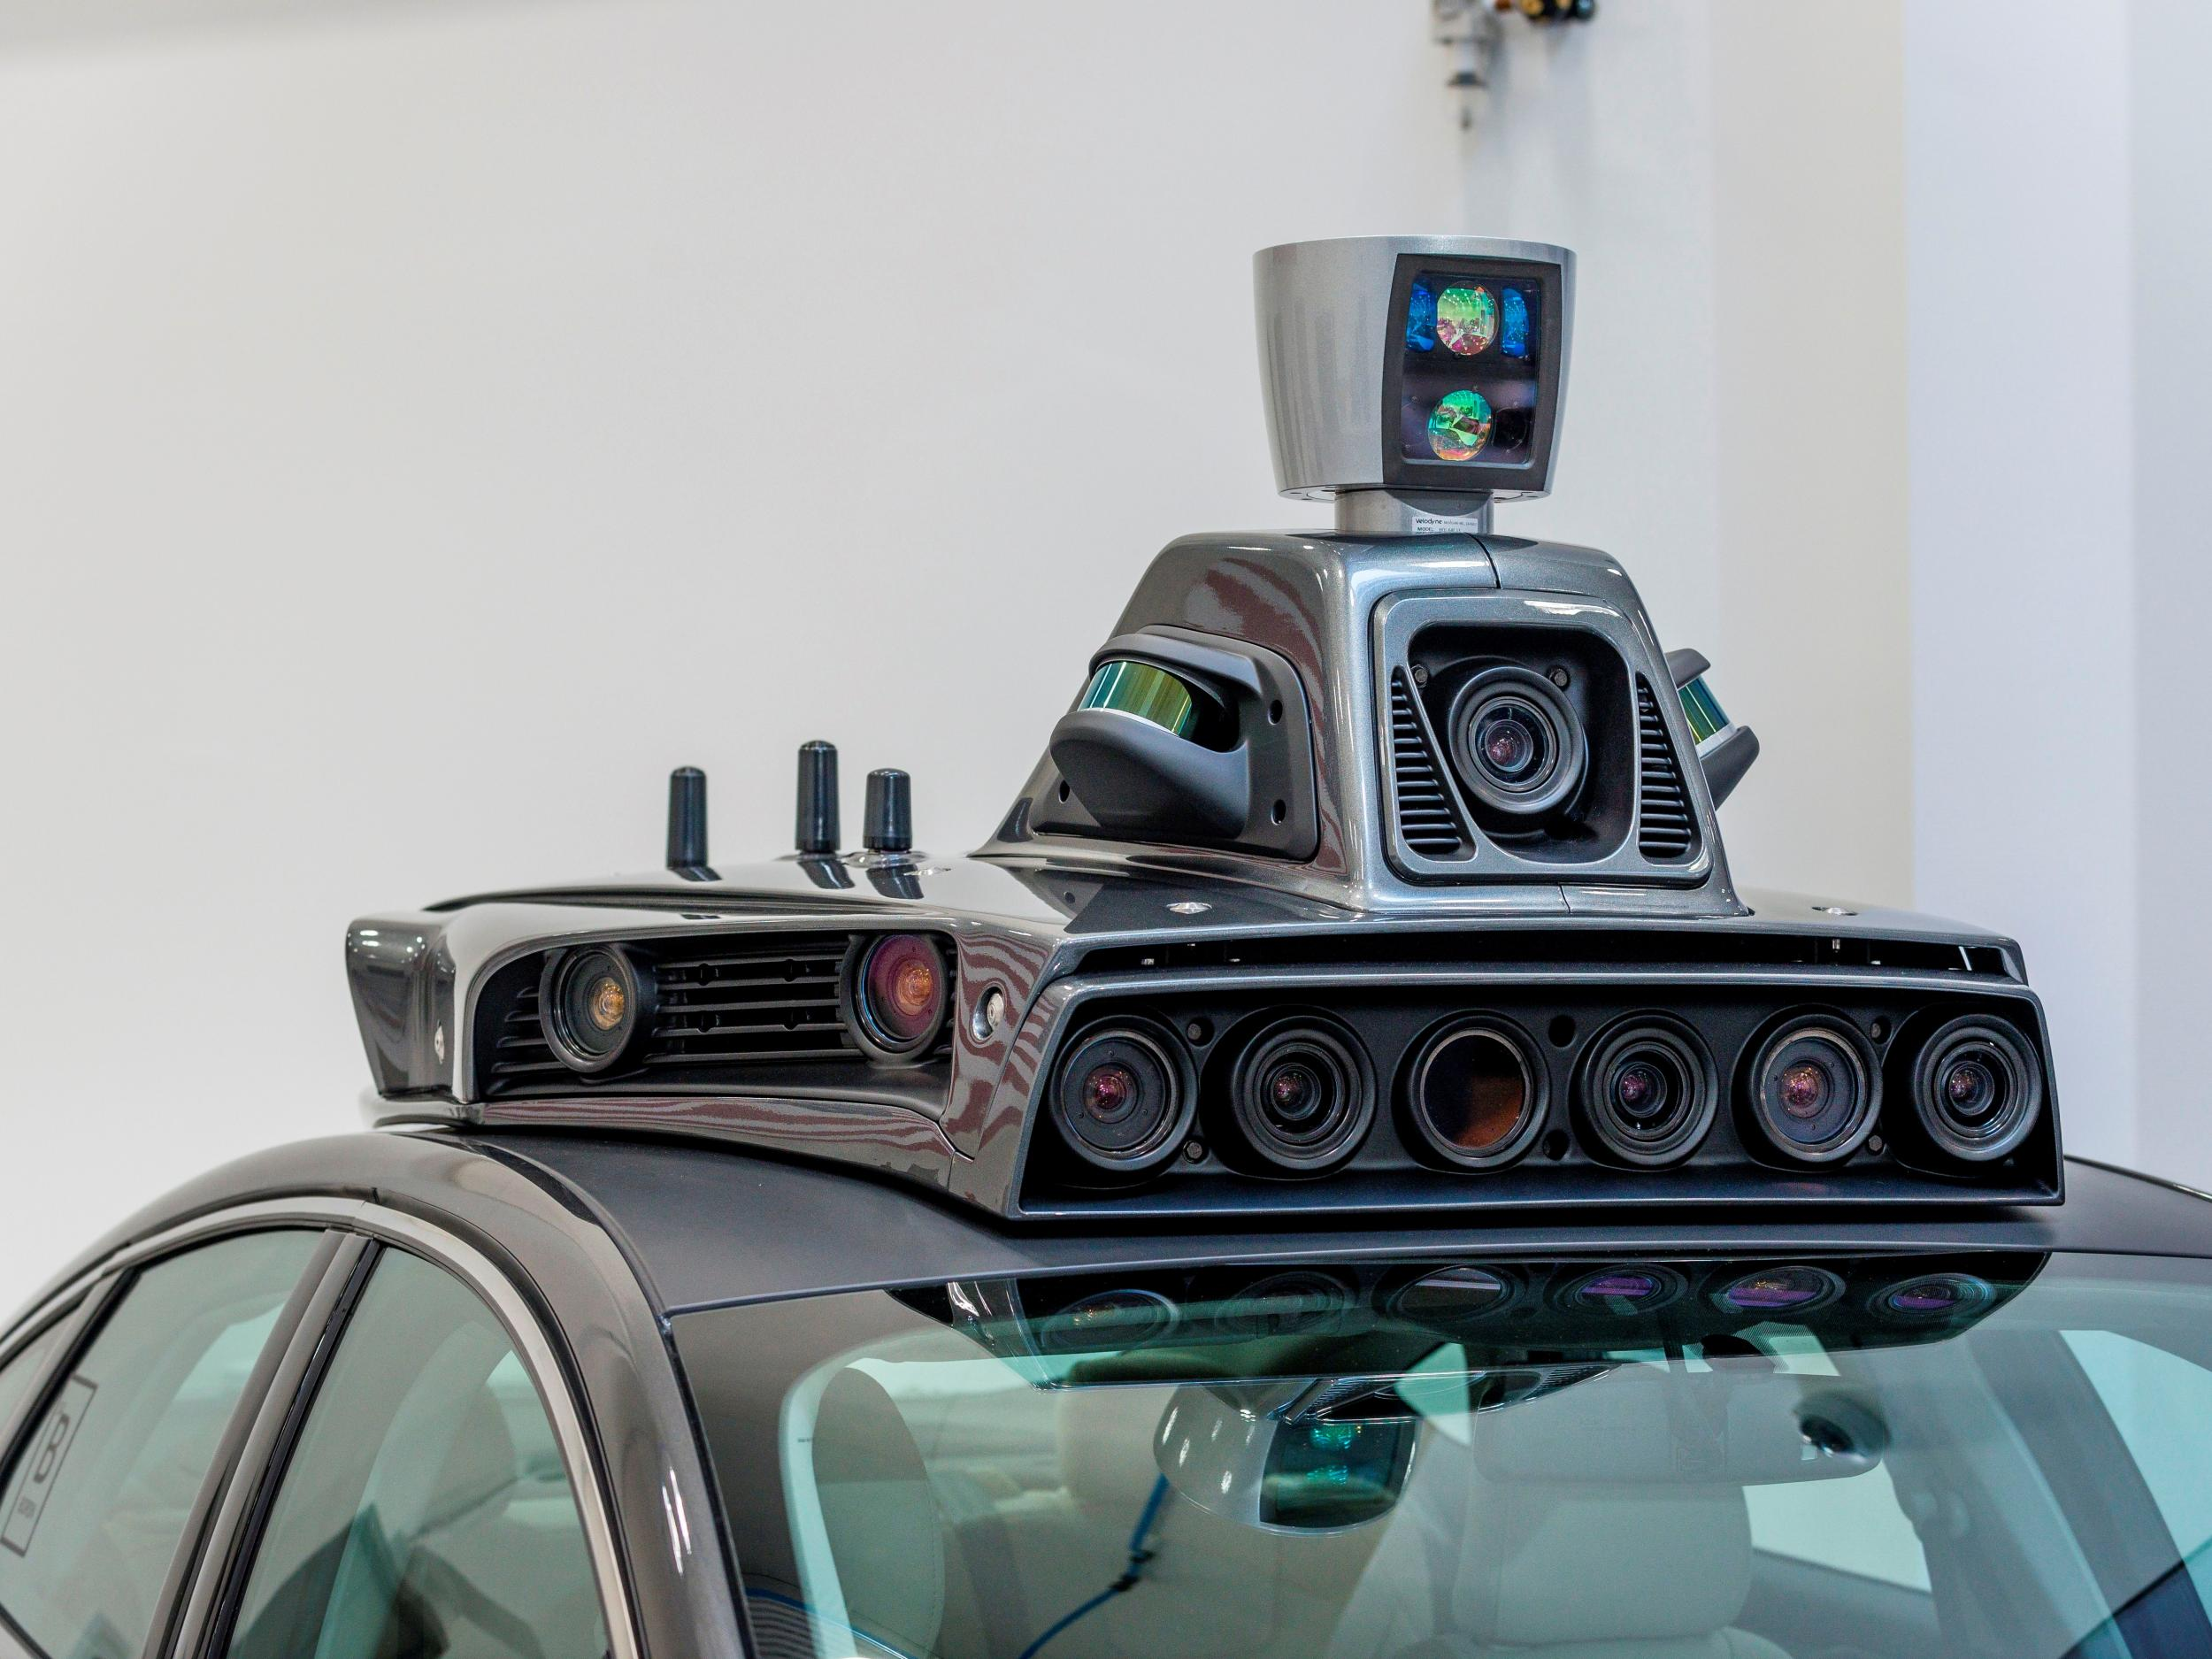 self-driving cars - latest news, breaking stories and